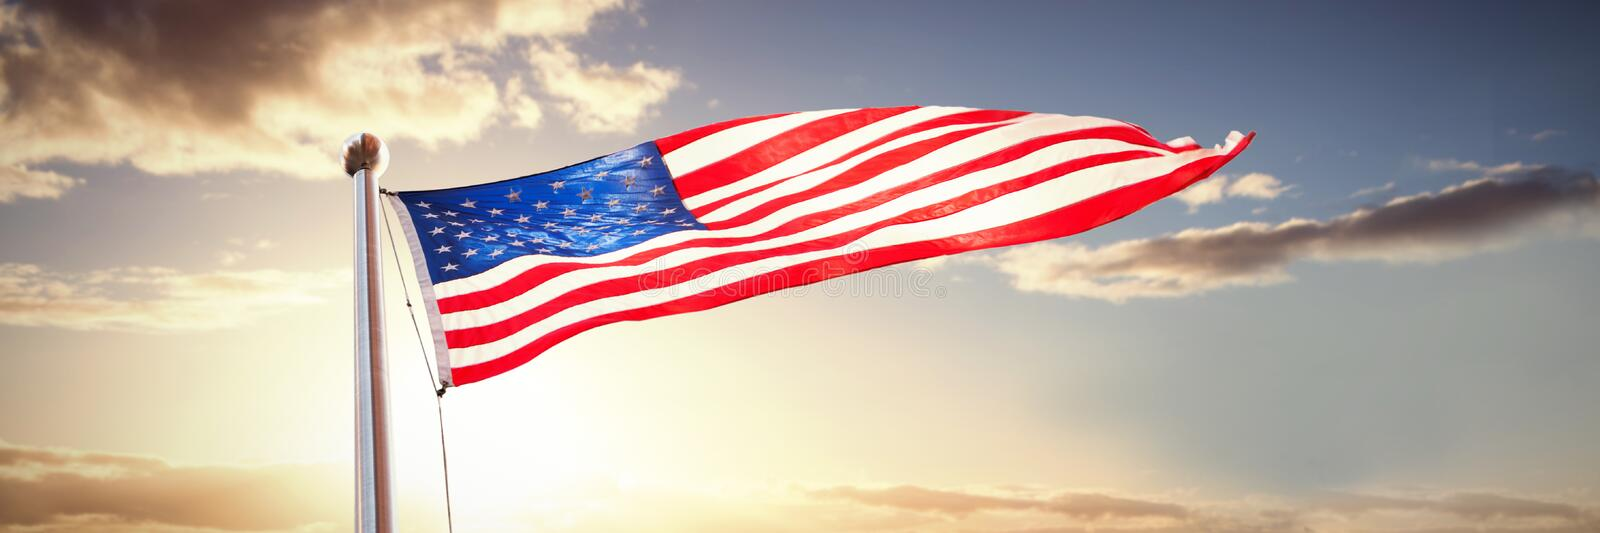 Composite image of american flag waving over white background. American flag waving over white background against panoramic view of golden fields royalty free stock photography